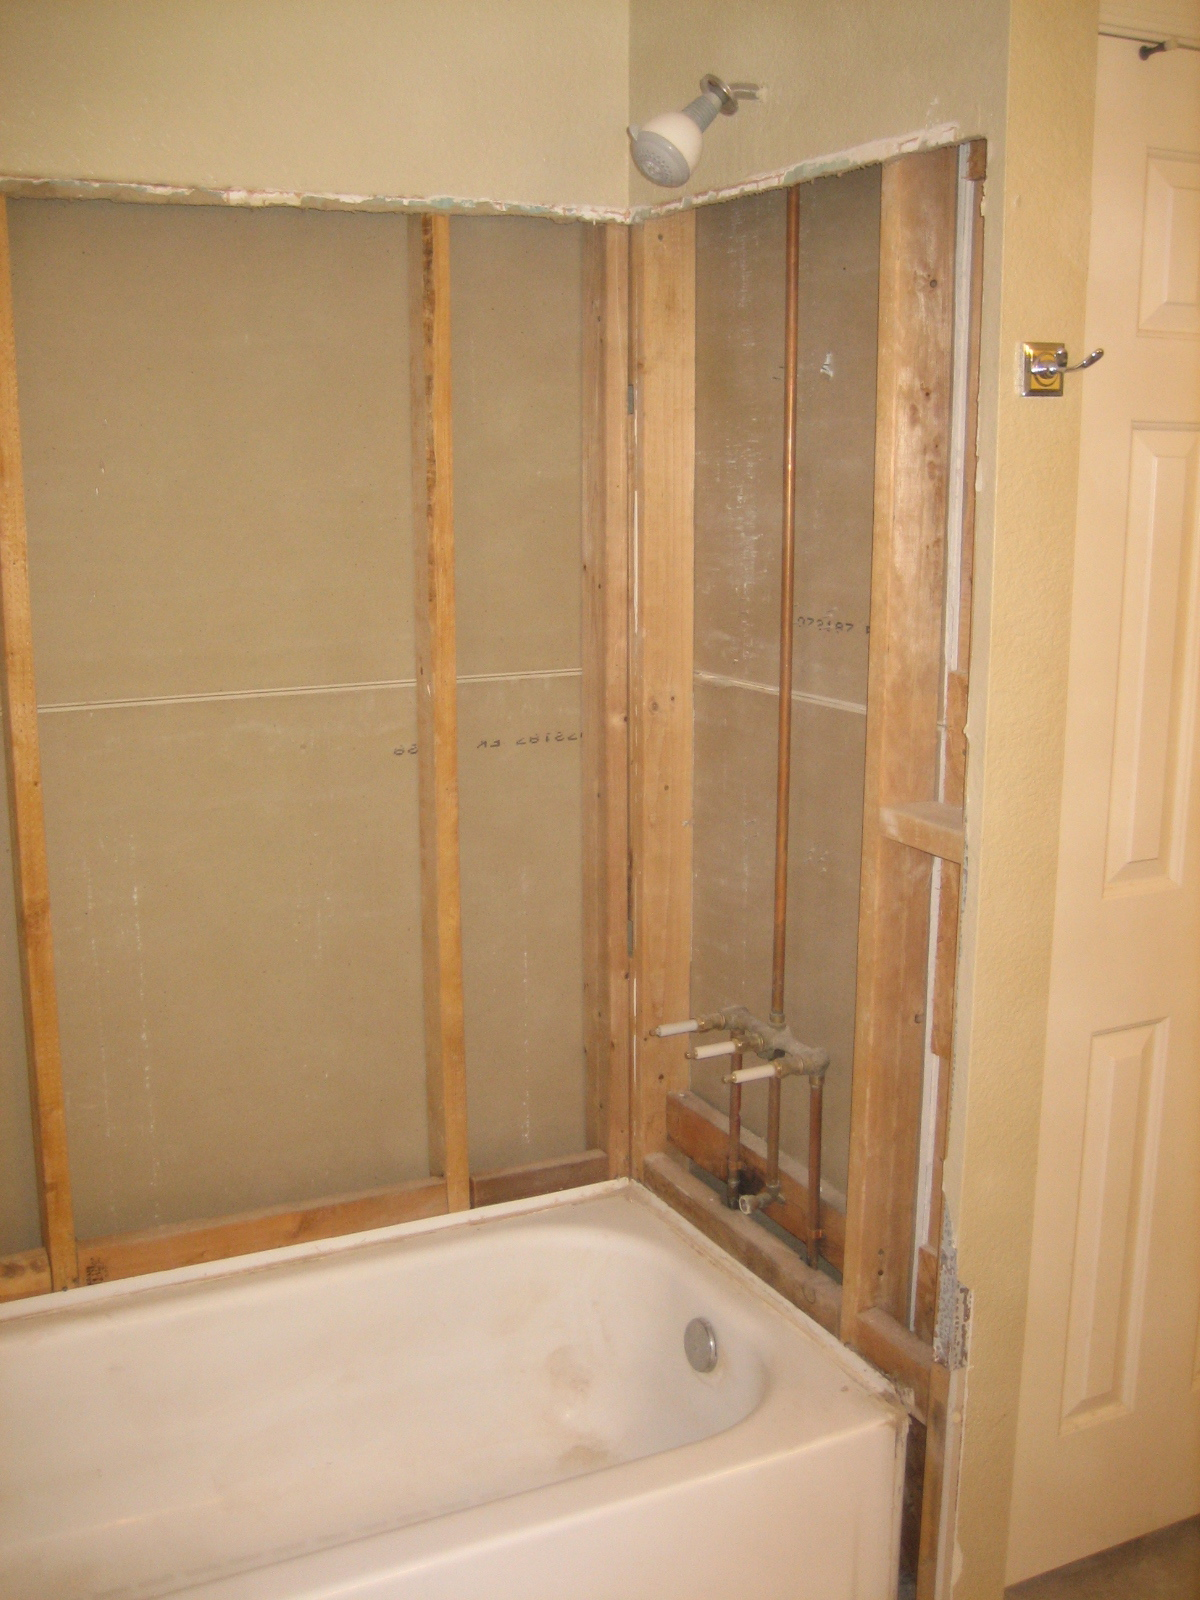 tore out the backer board and built 2 boxes for inset shower shelves